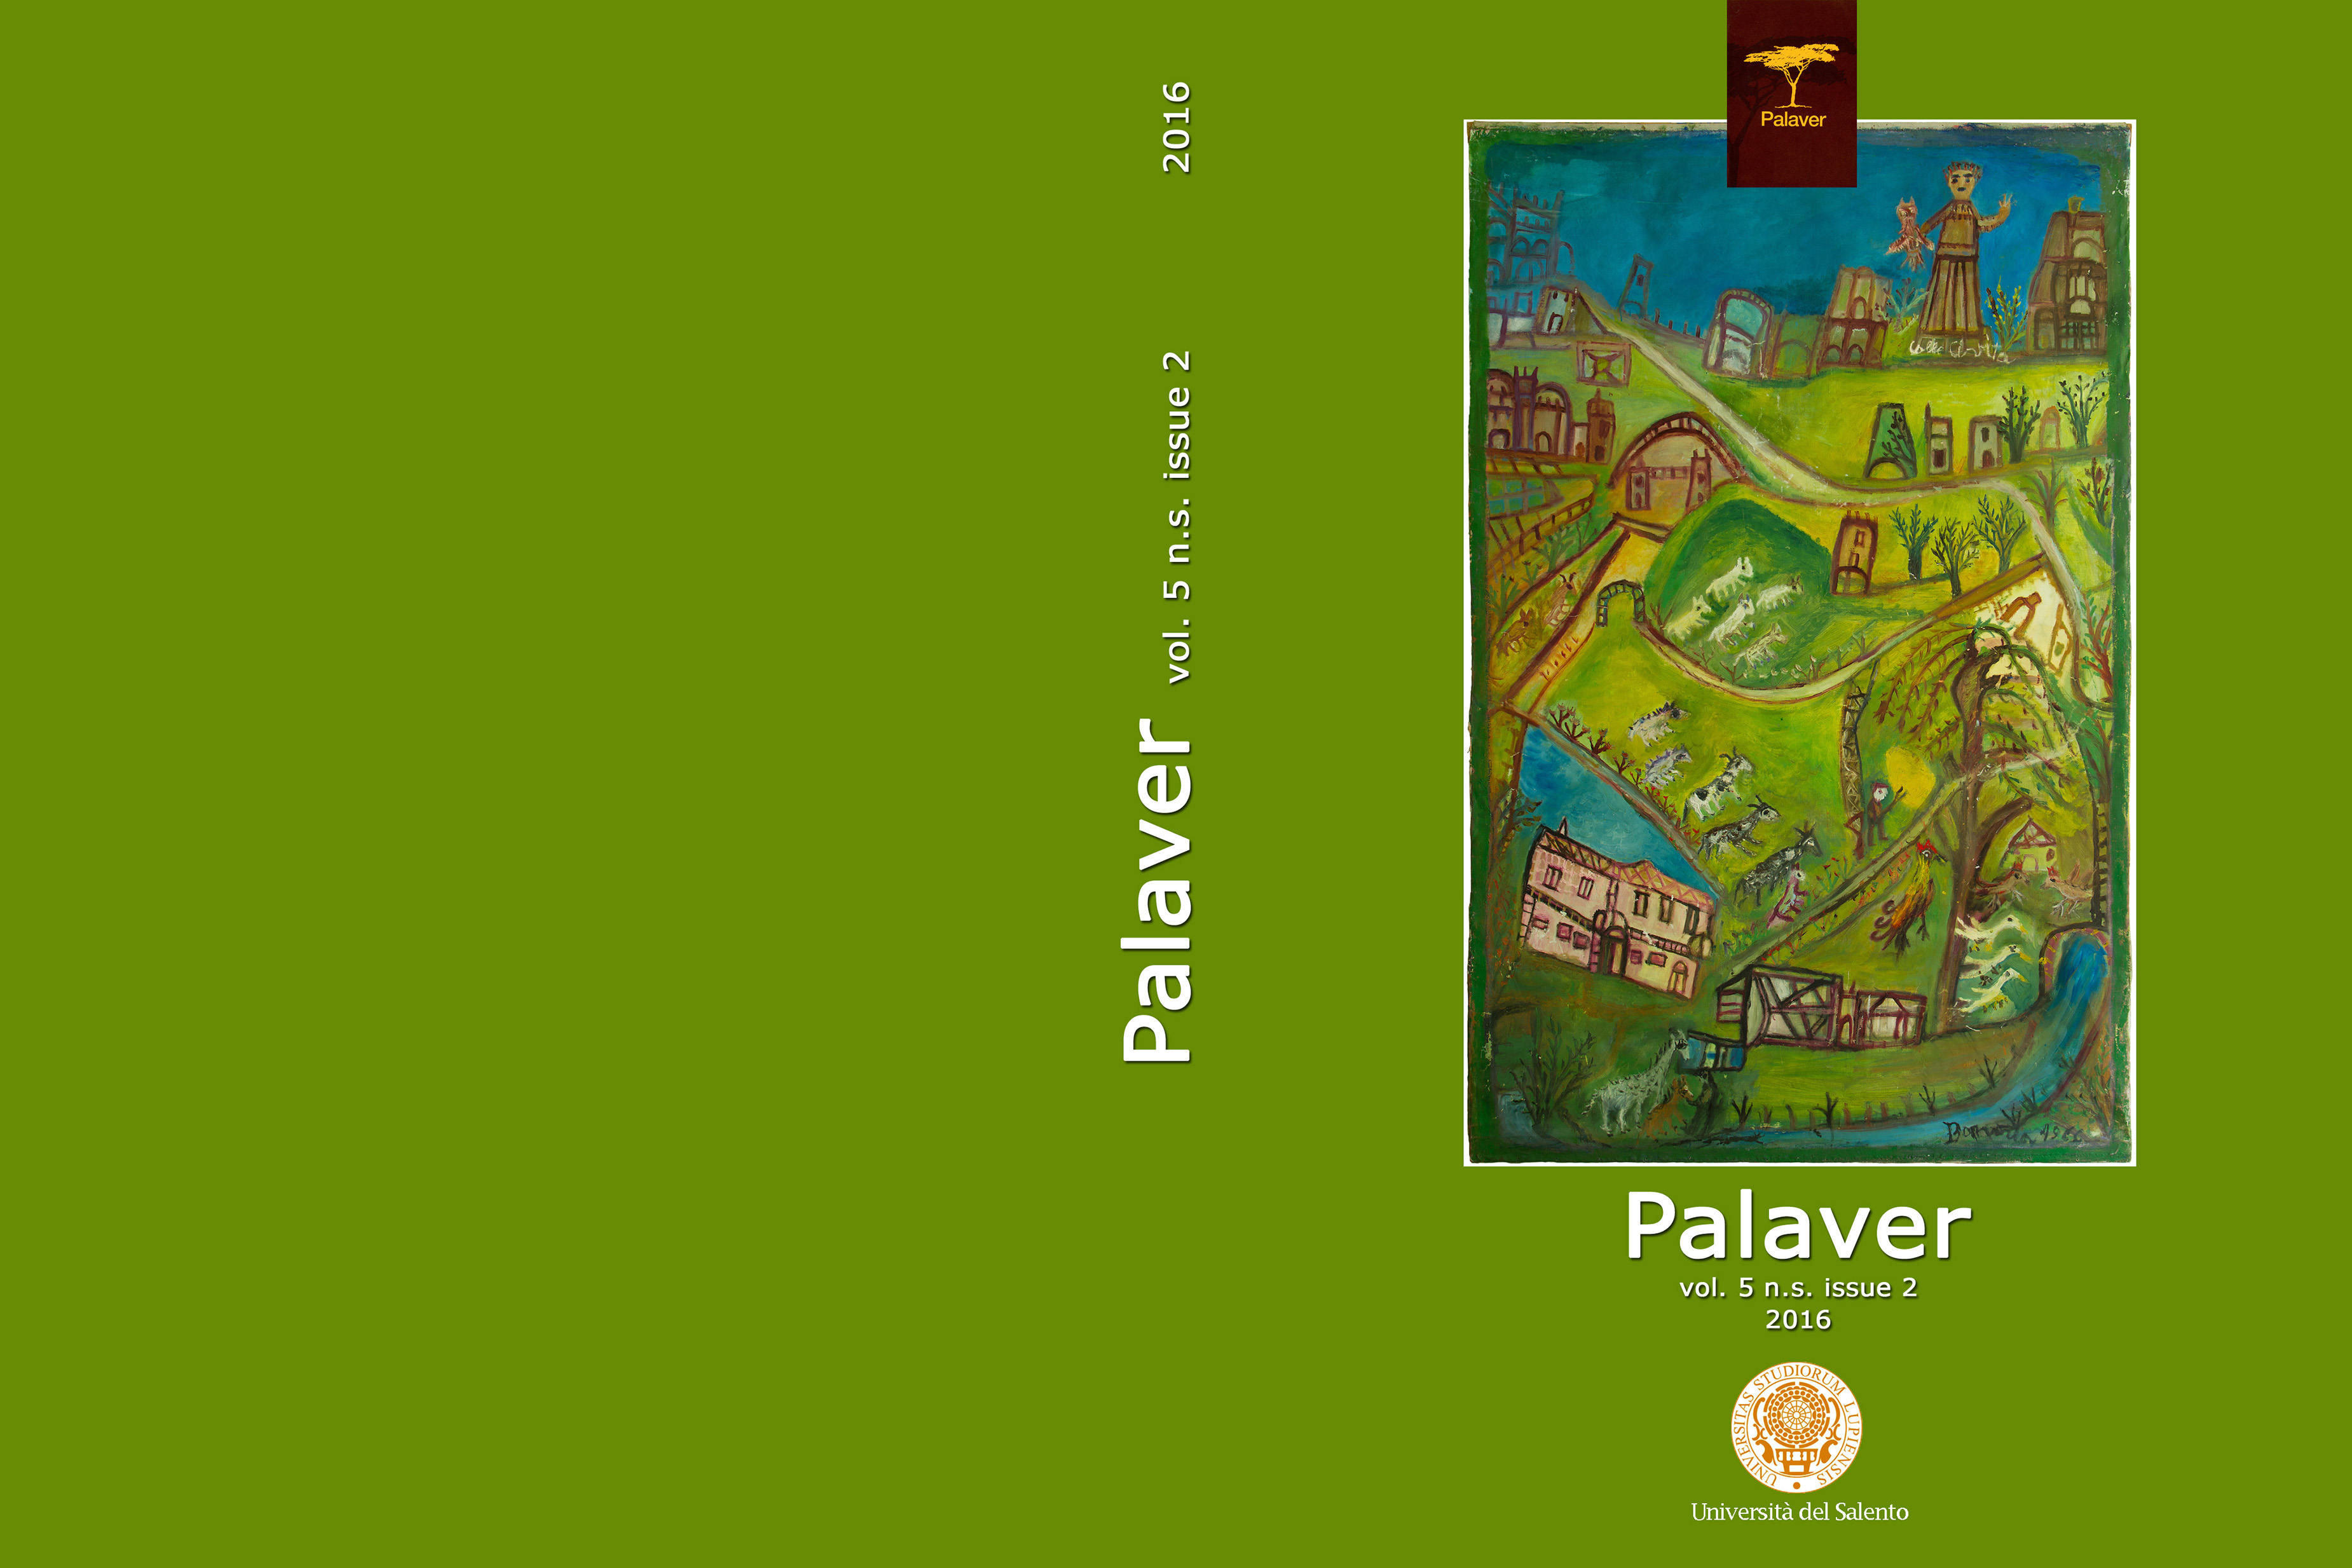 Palaver - Volume 5 n.s., Issue 2 (2016) - Covere-ISSN: 2280-4250